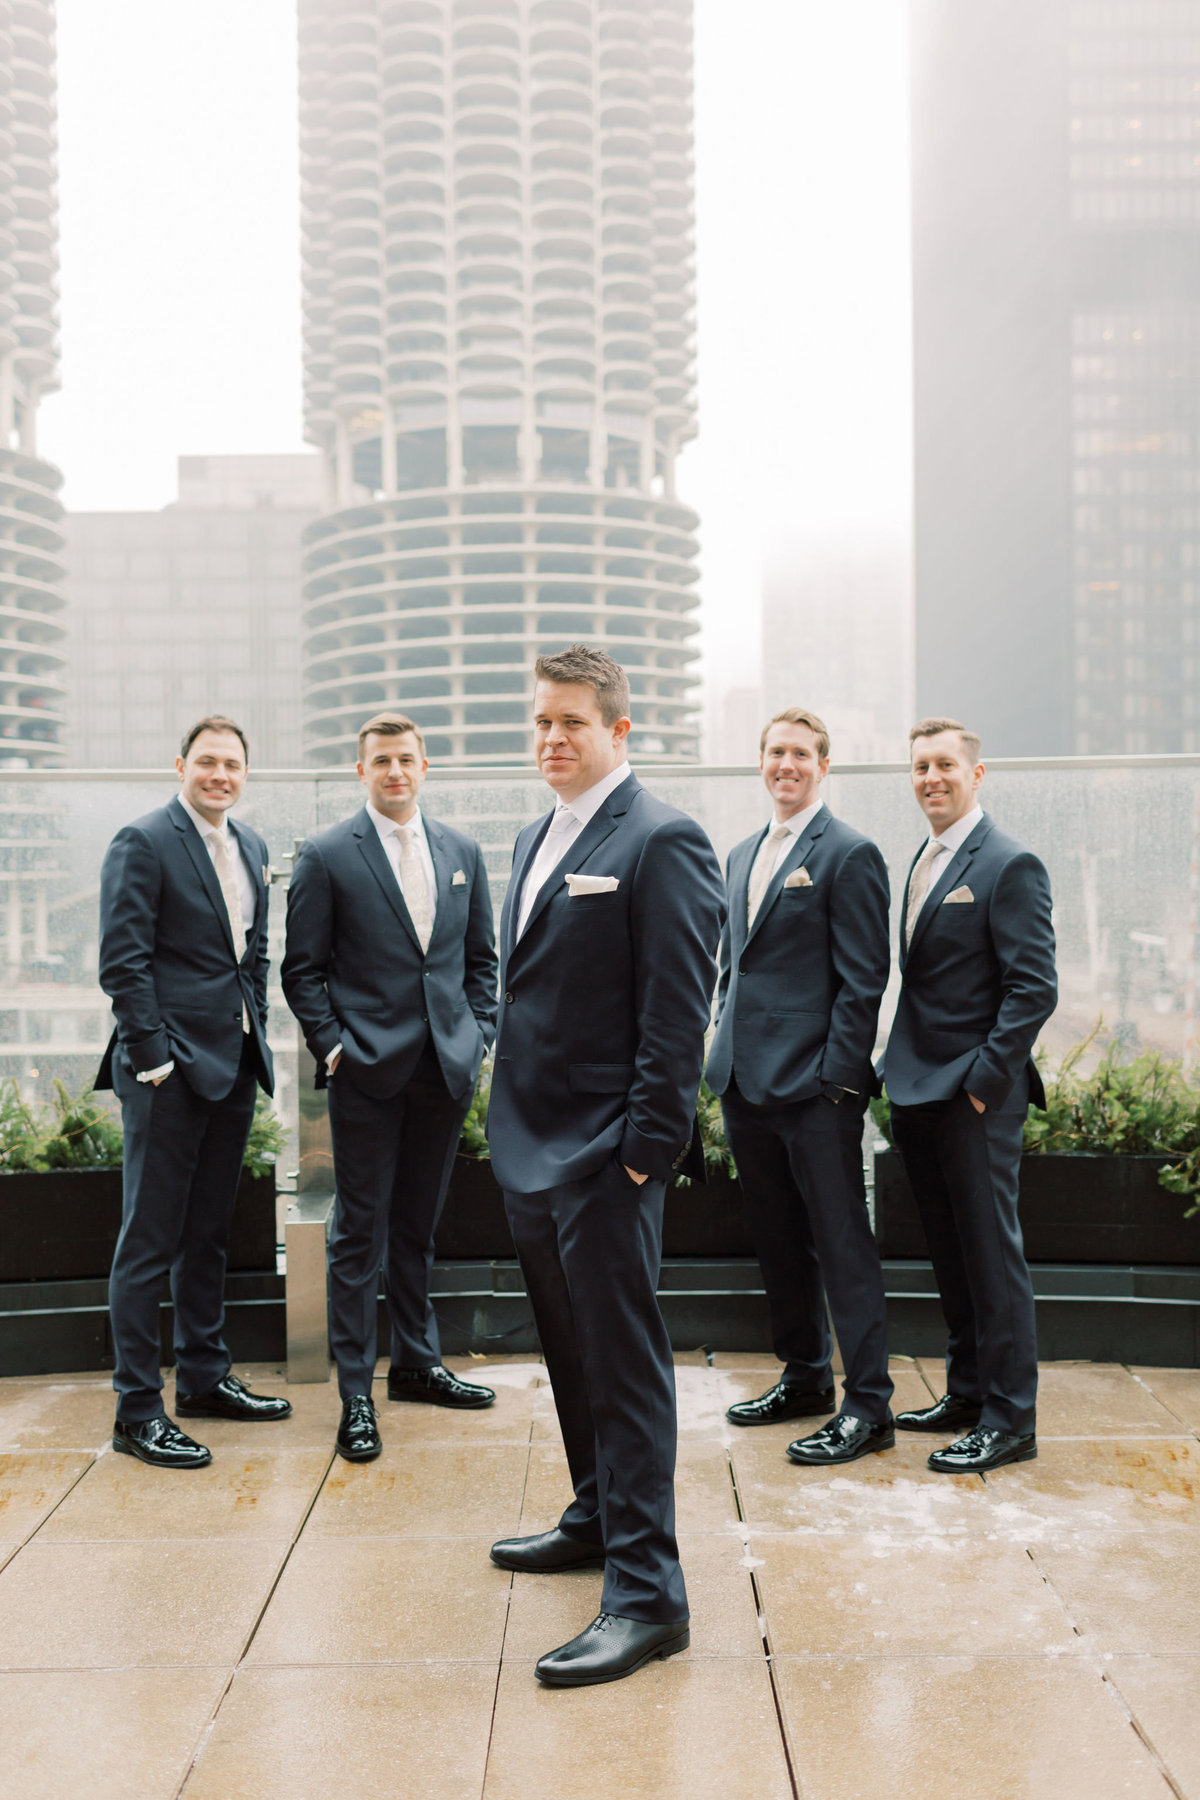 TiffaneyChildsPhotography-ChicagoWeddingPhotographer-Kimberly+Jimmy-ChicagoRenaissanceHotelWedding-BridalParty-36